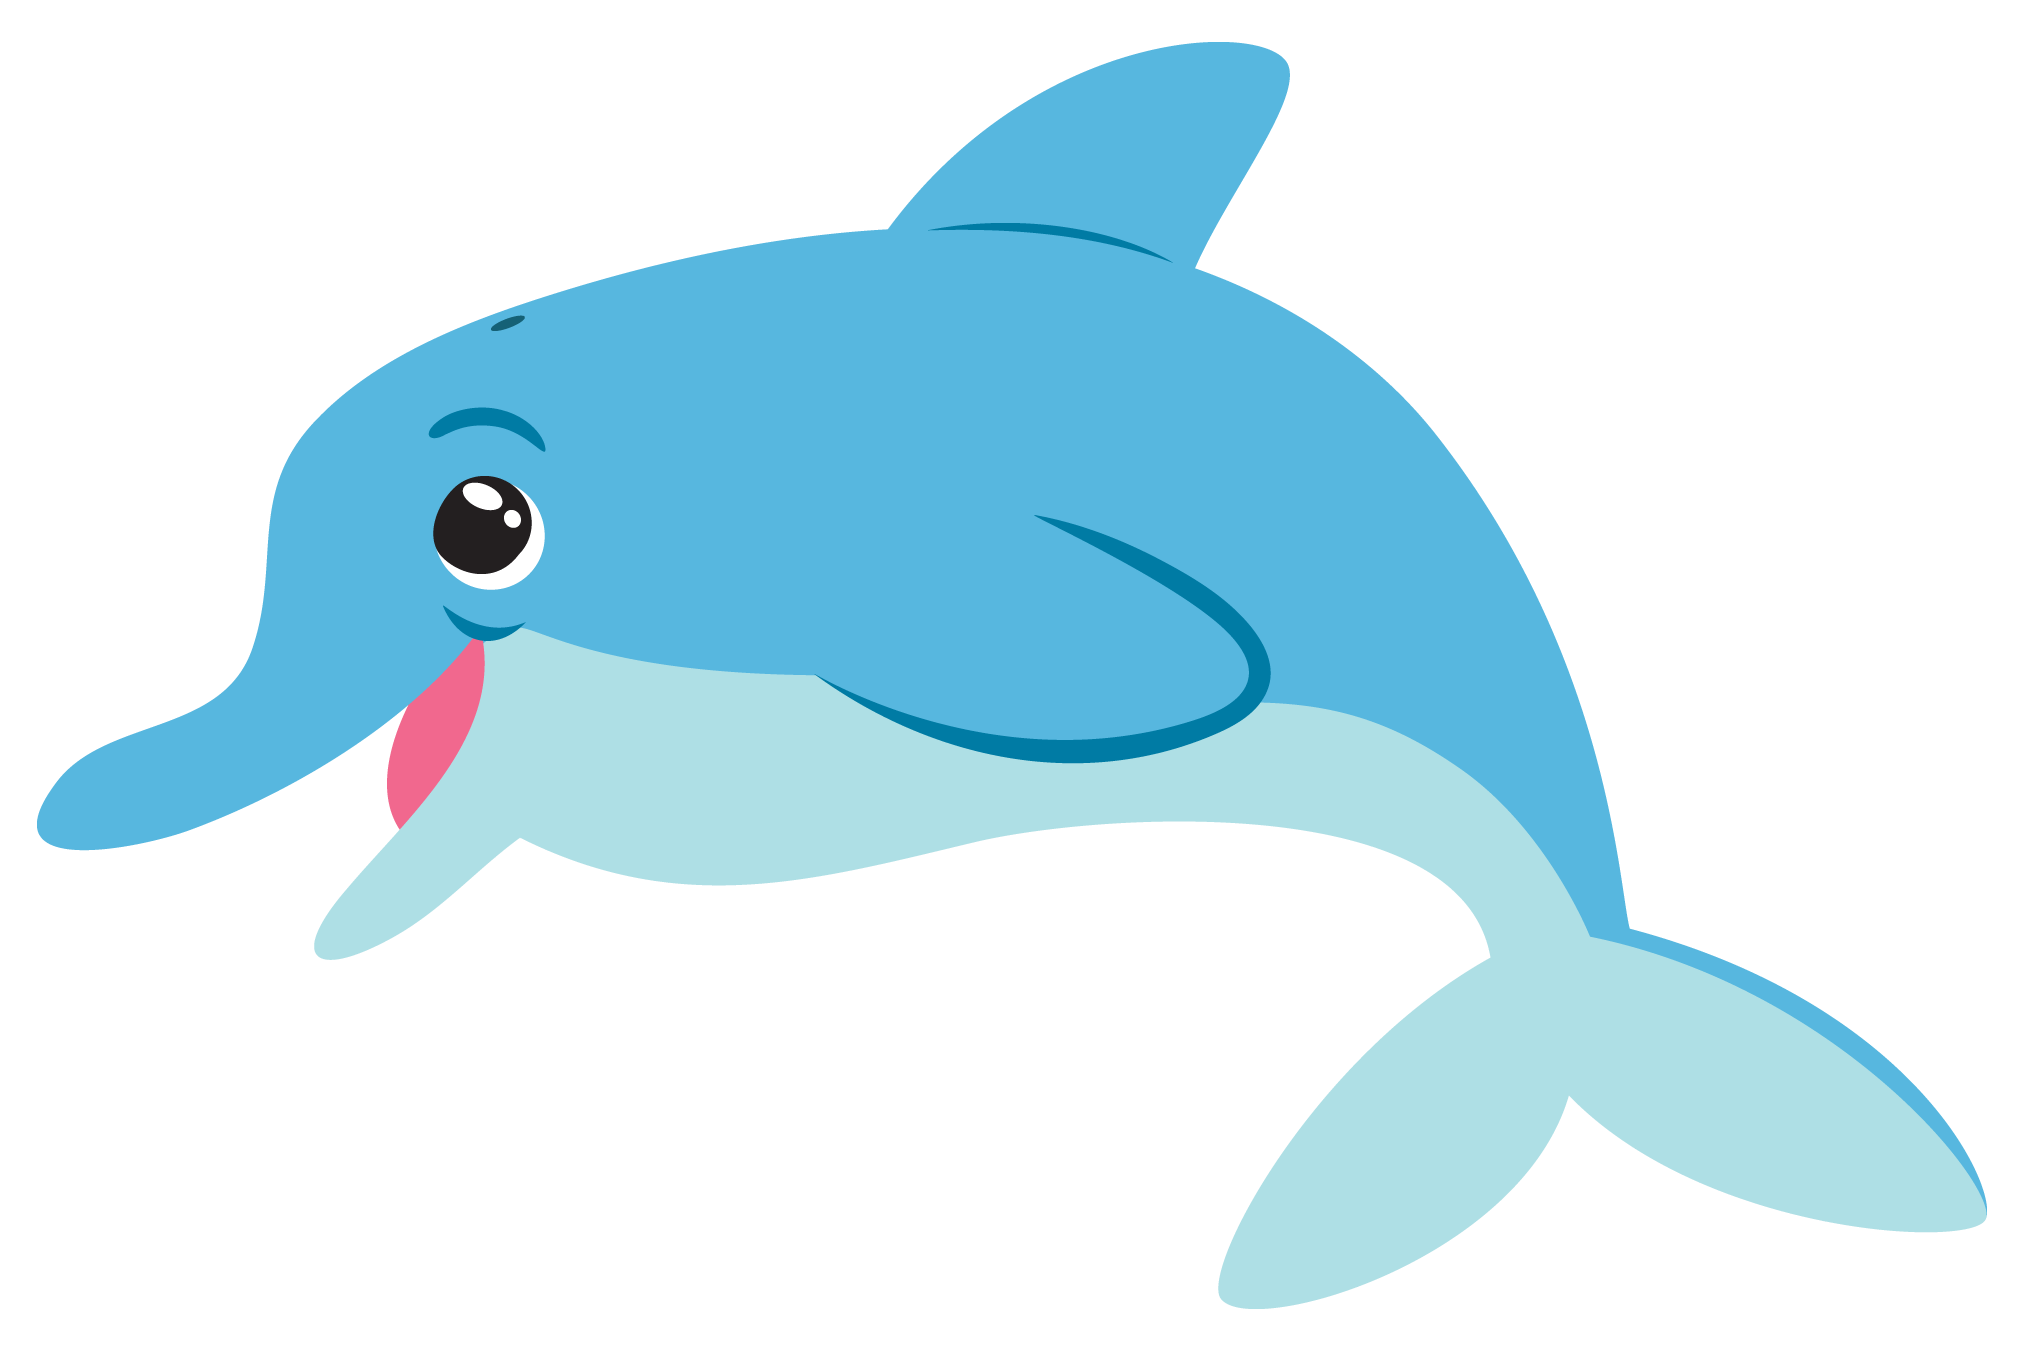 Clipart panda fish jpg free download Dolphin Clip Art Free | Clipart Panda - Free Clipart Images ... jpg free download